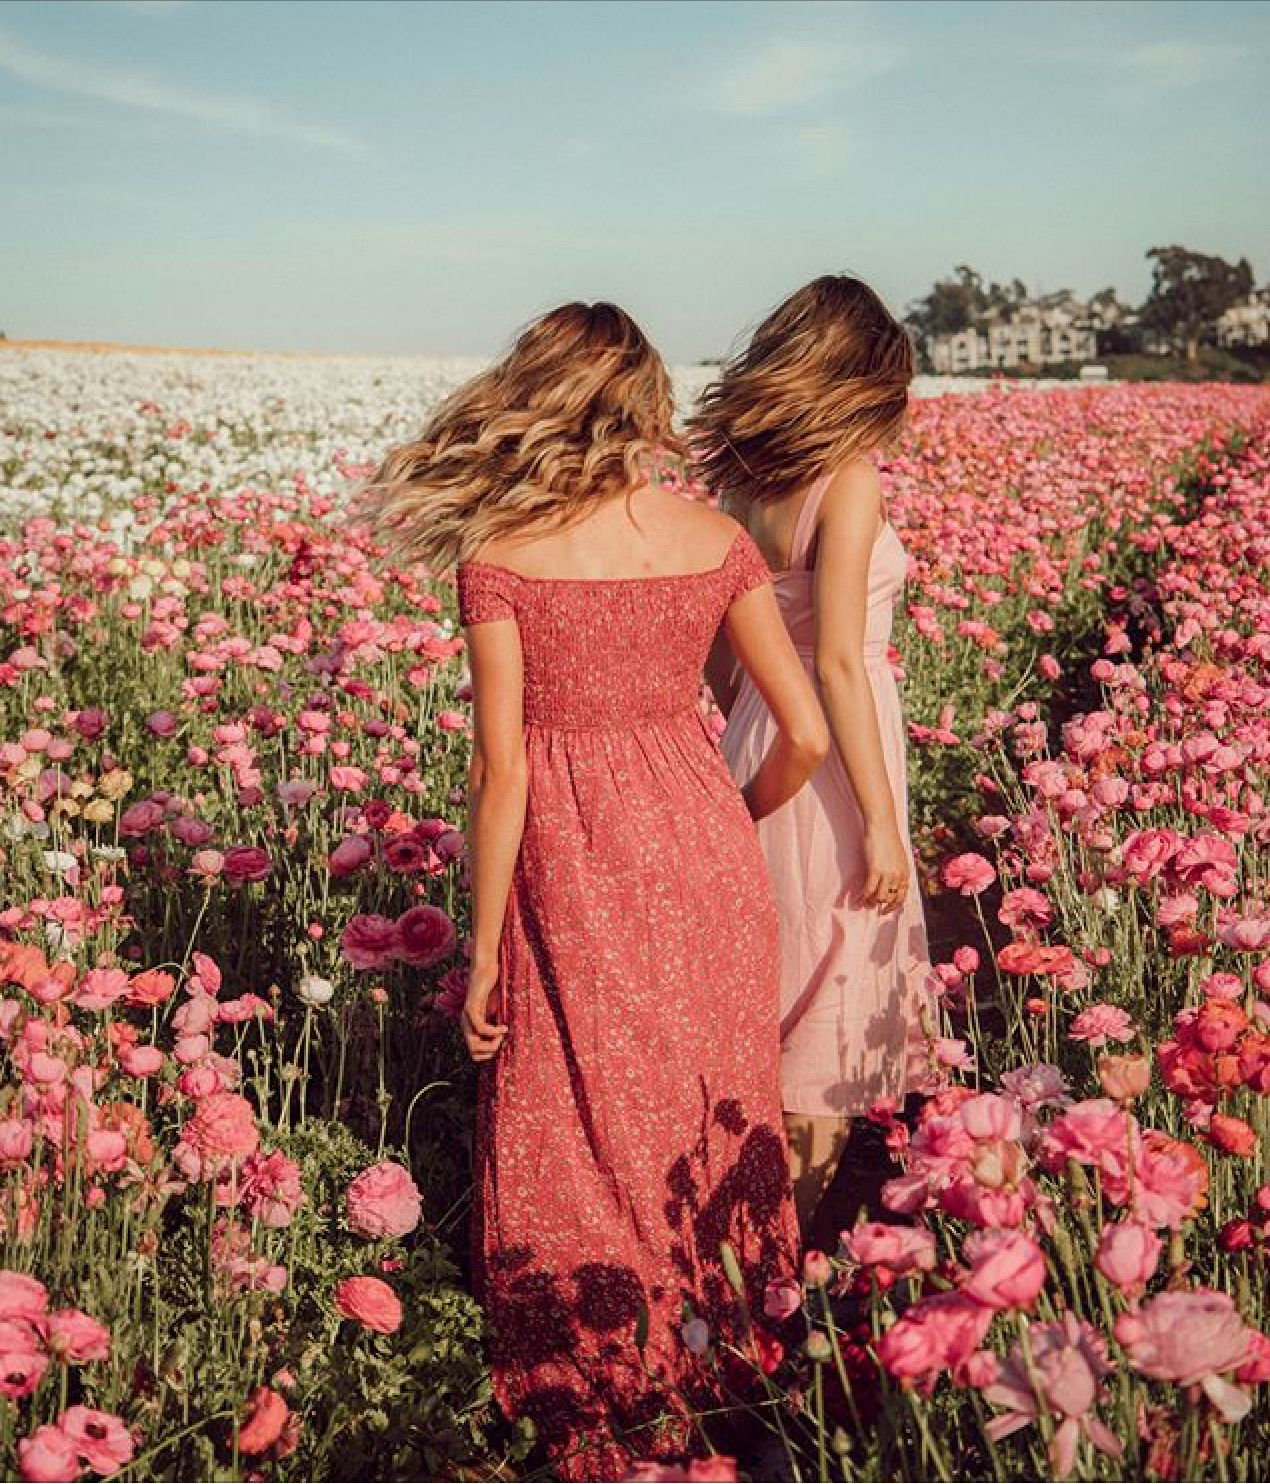 Maddie Ziegler And Summer Mckeen Photography Fields Photography